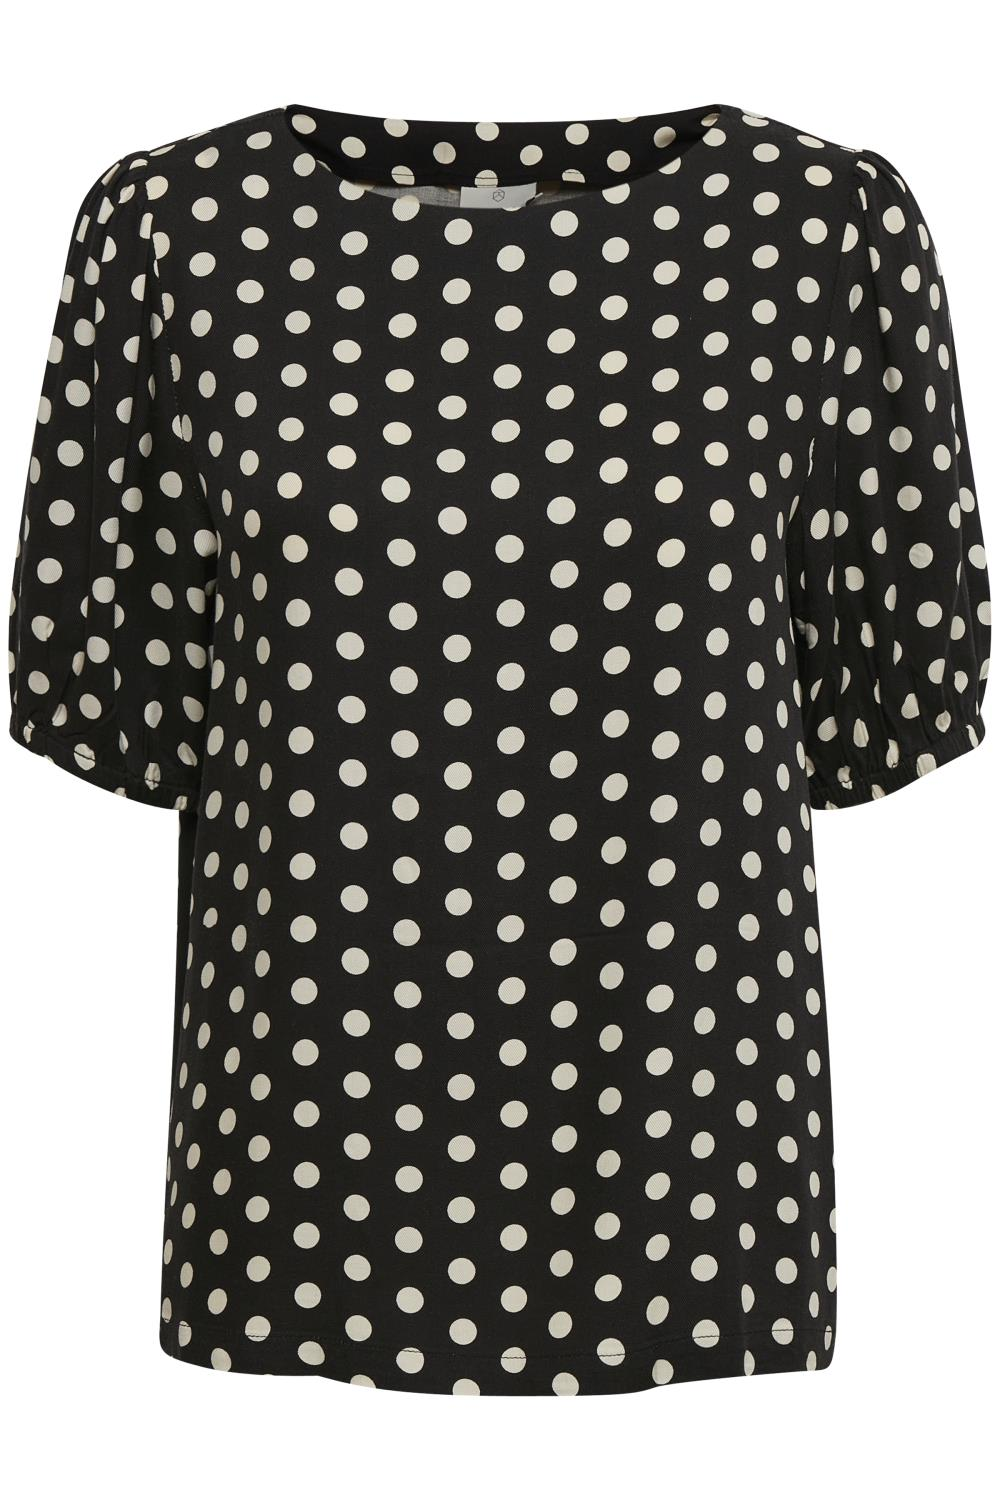 Kaffe Barbara blouse, black/broken white dot